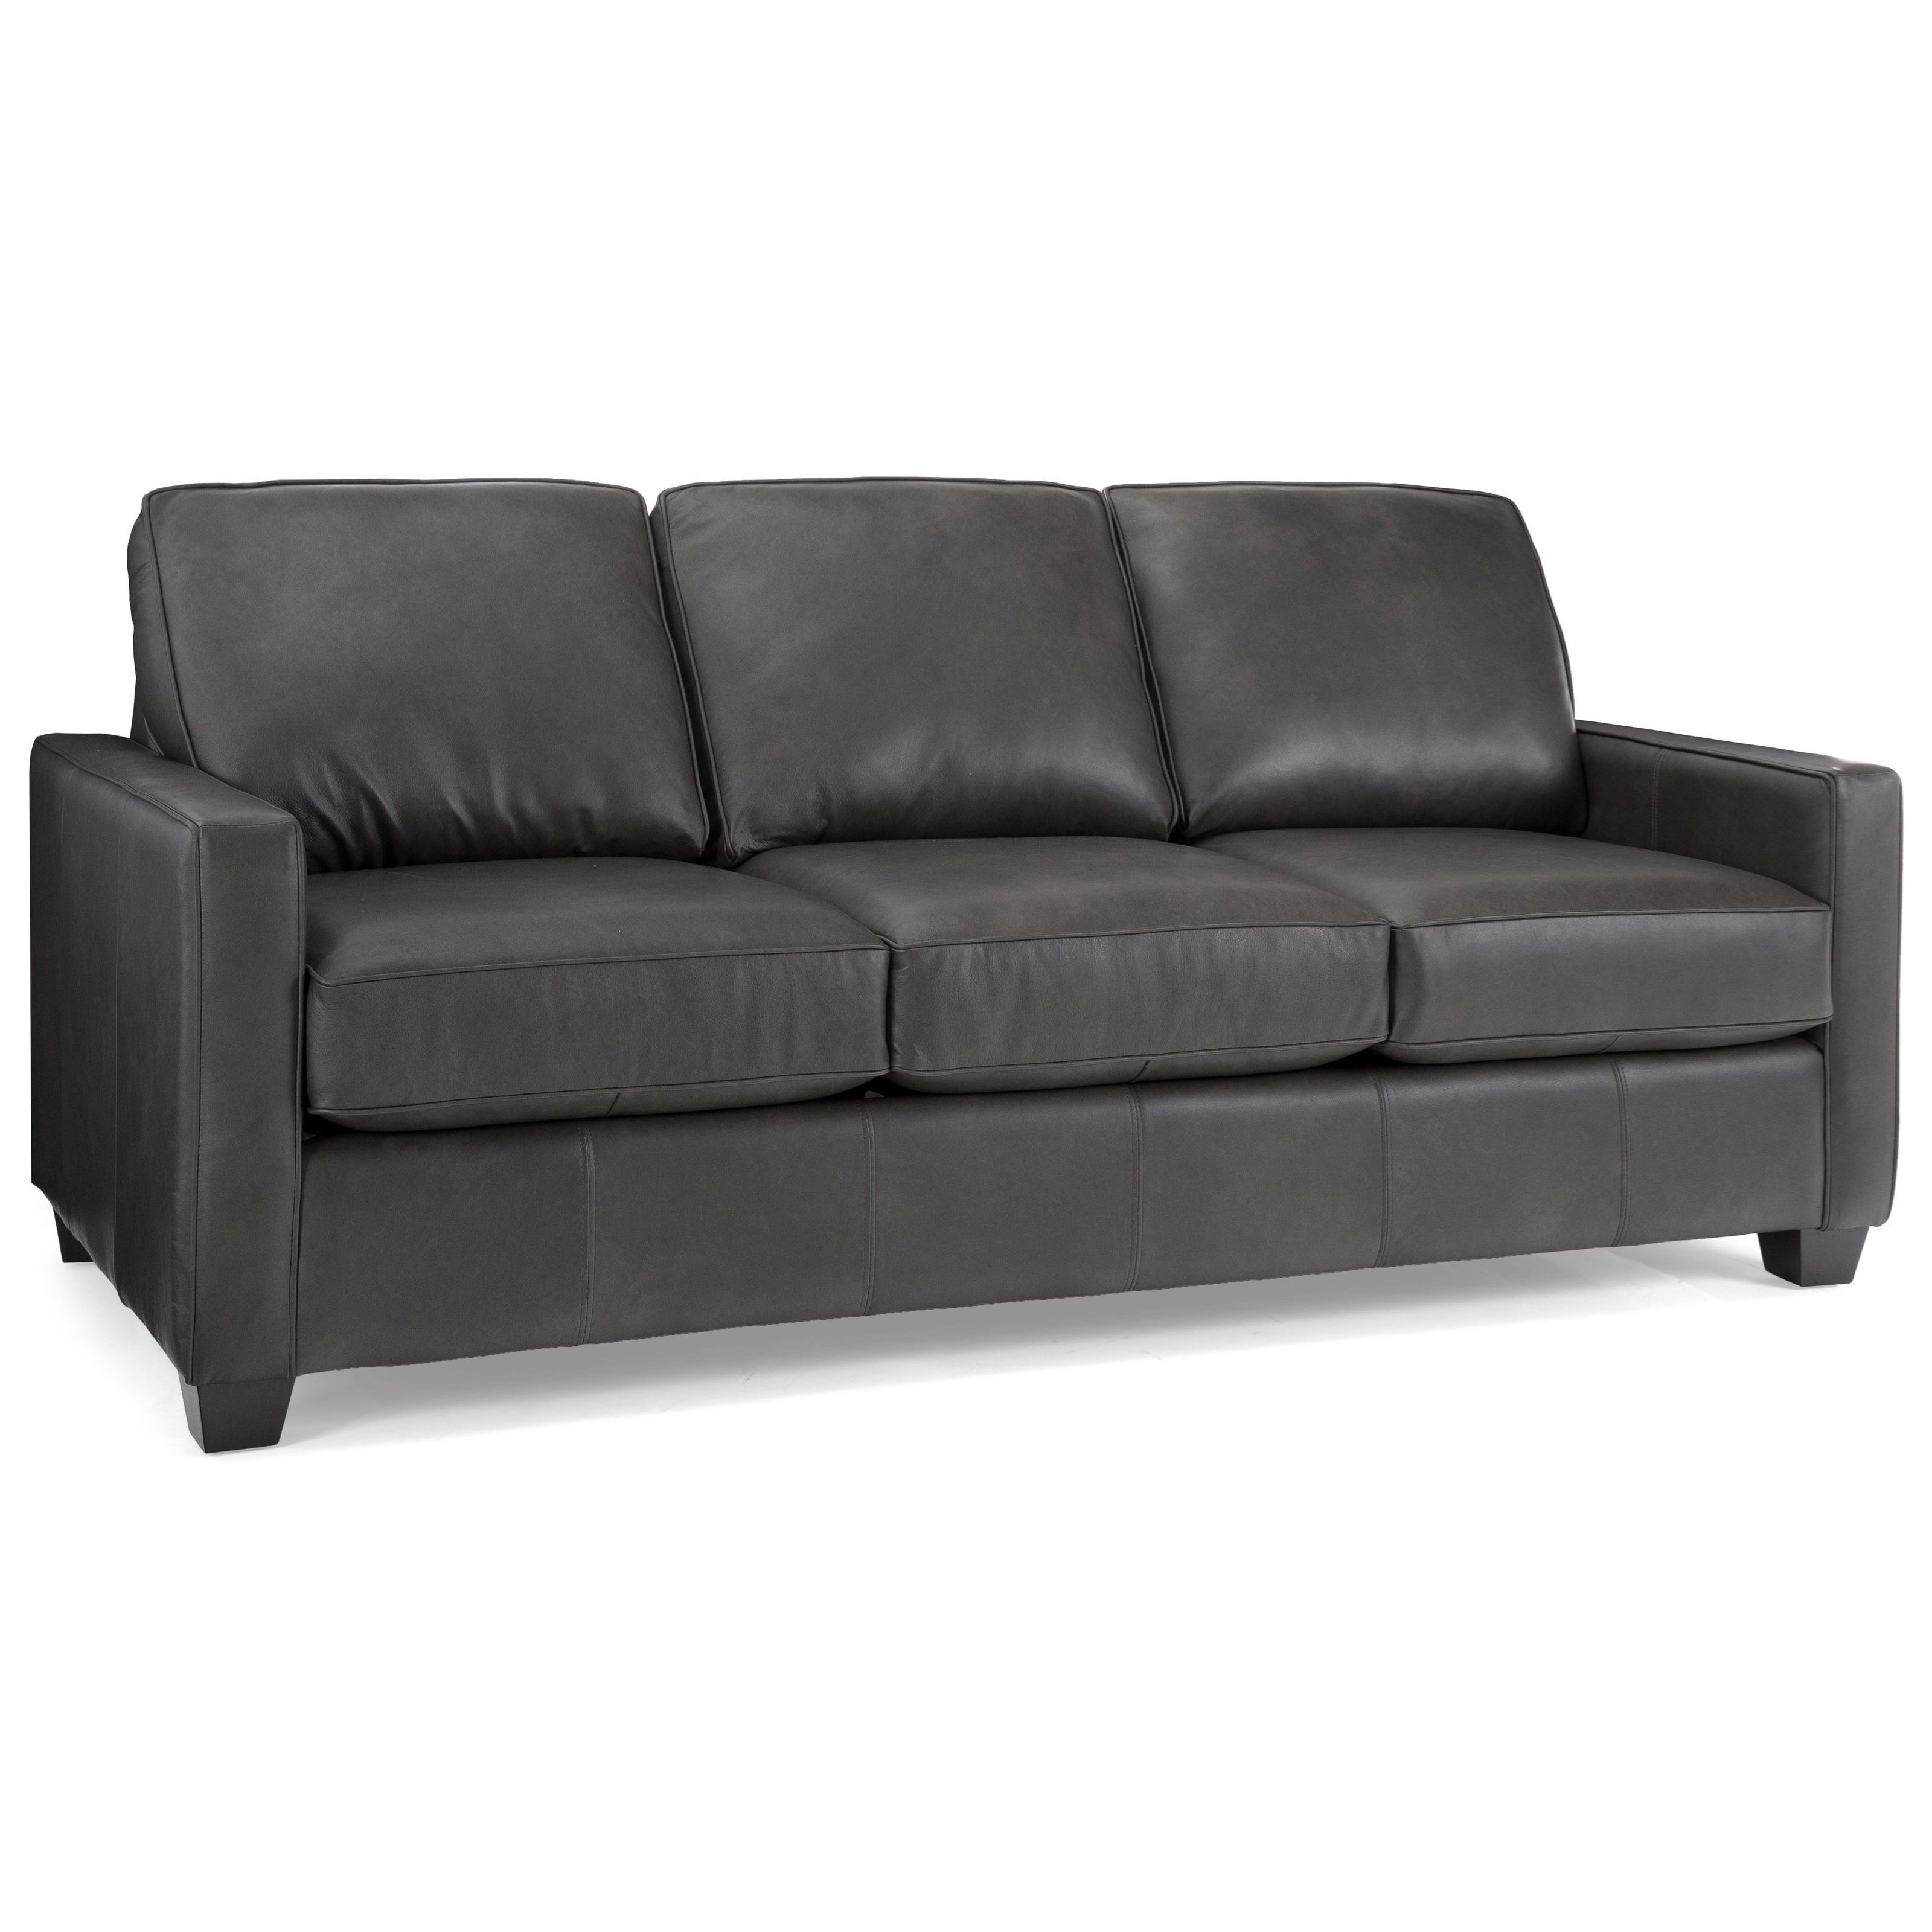 2855 Sofa by Decor-Rest at Reid's Furniture